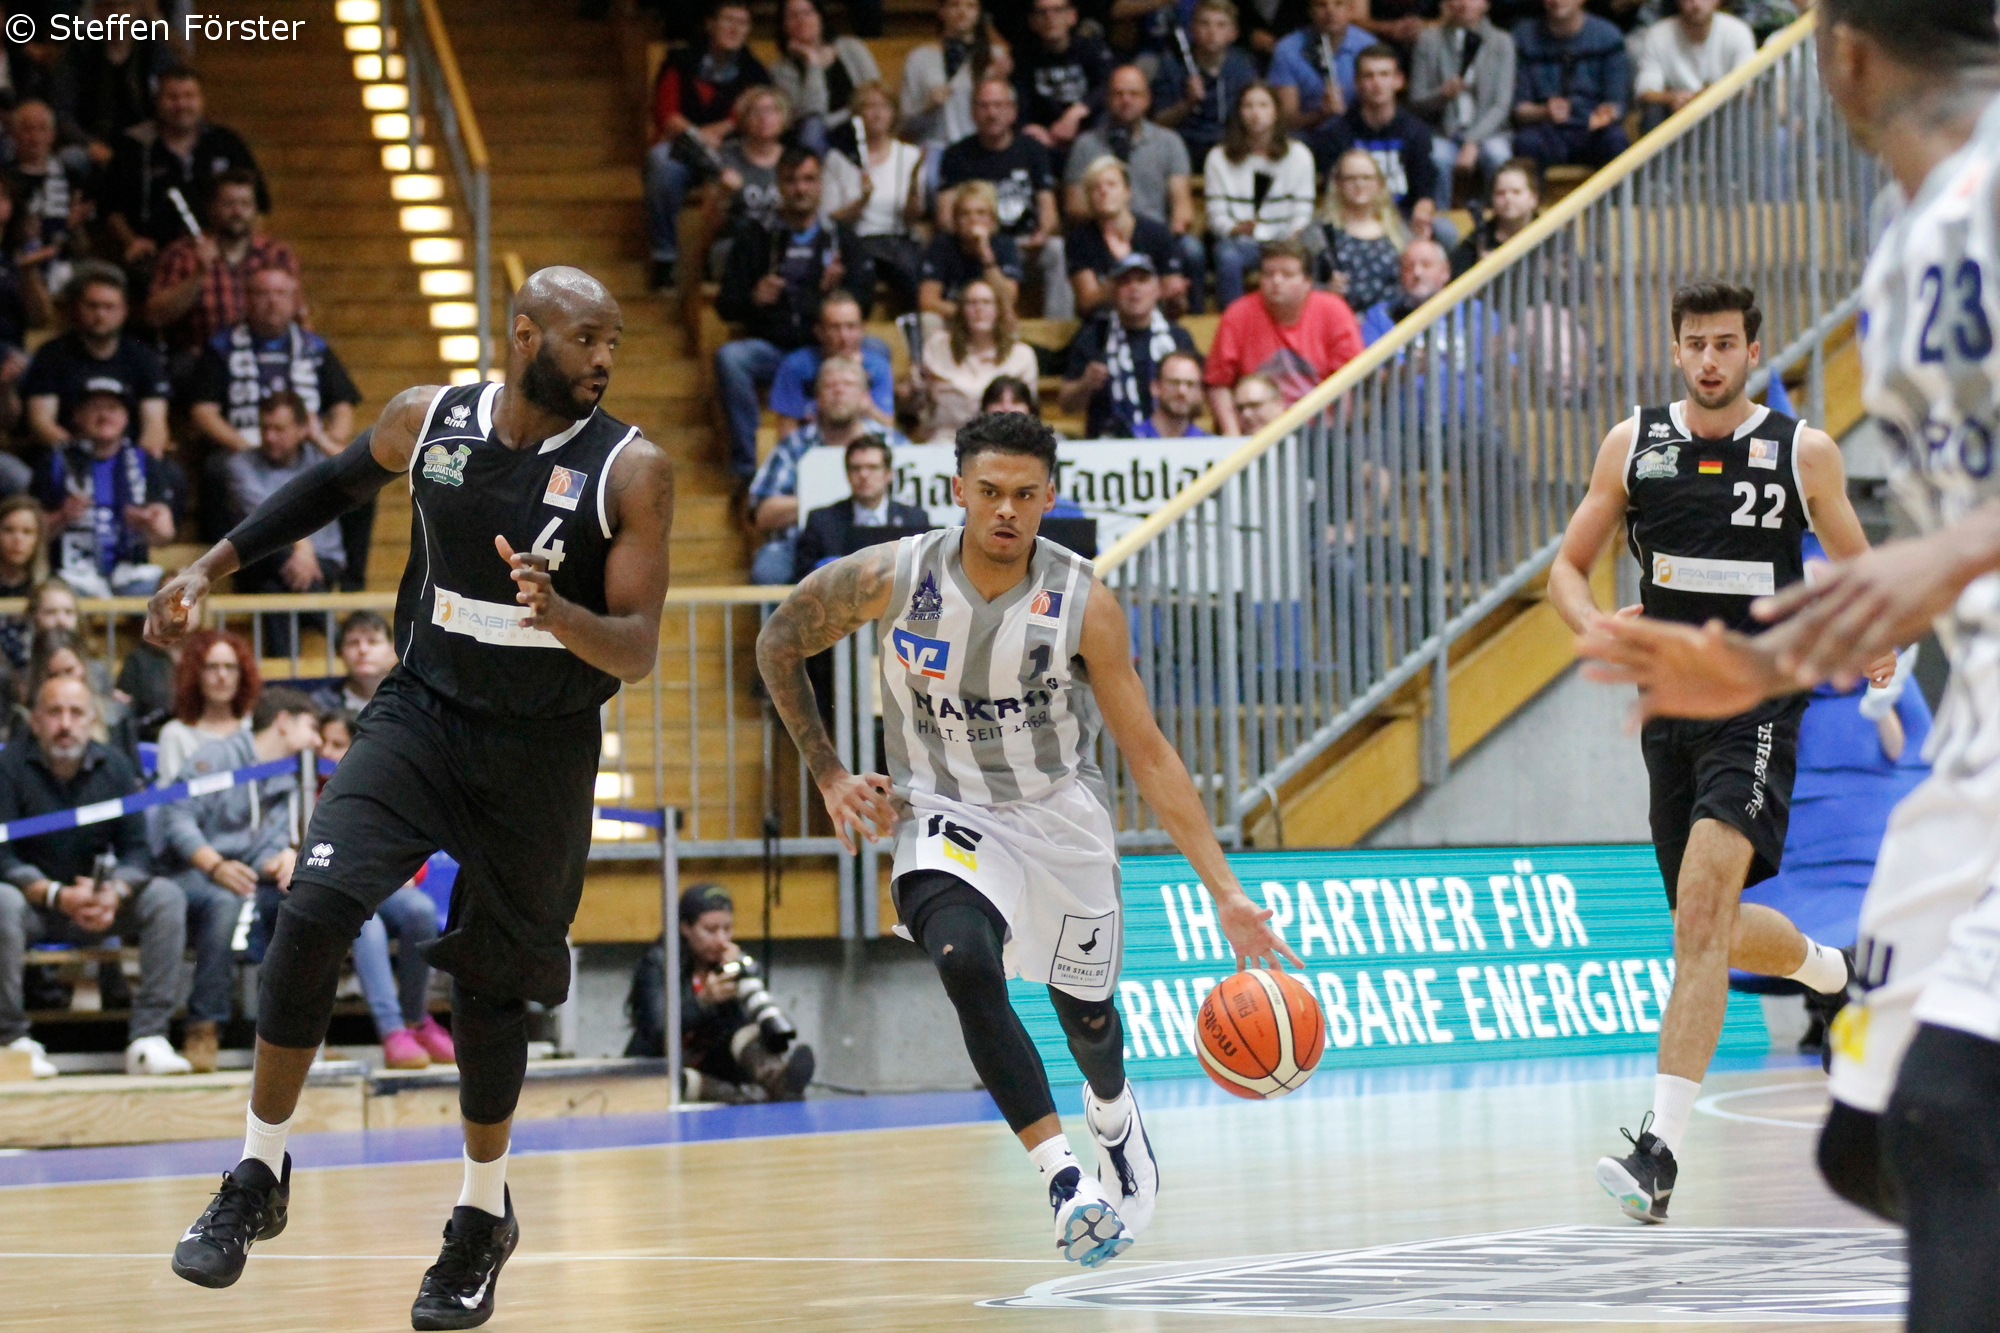 All-ProA-Crailsheim-Merlins-Michael-Smith-Dribble.jpg